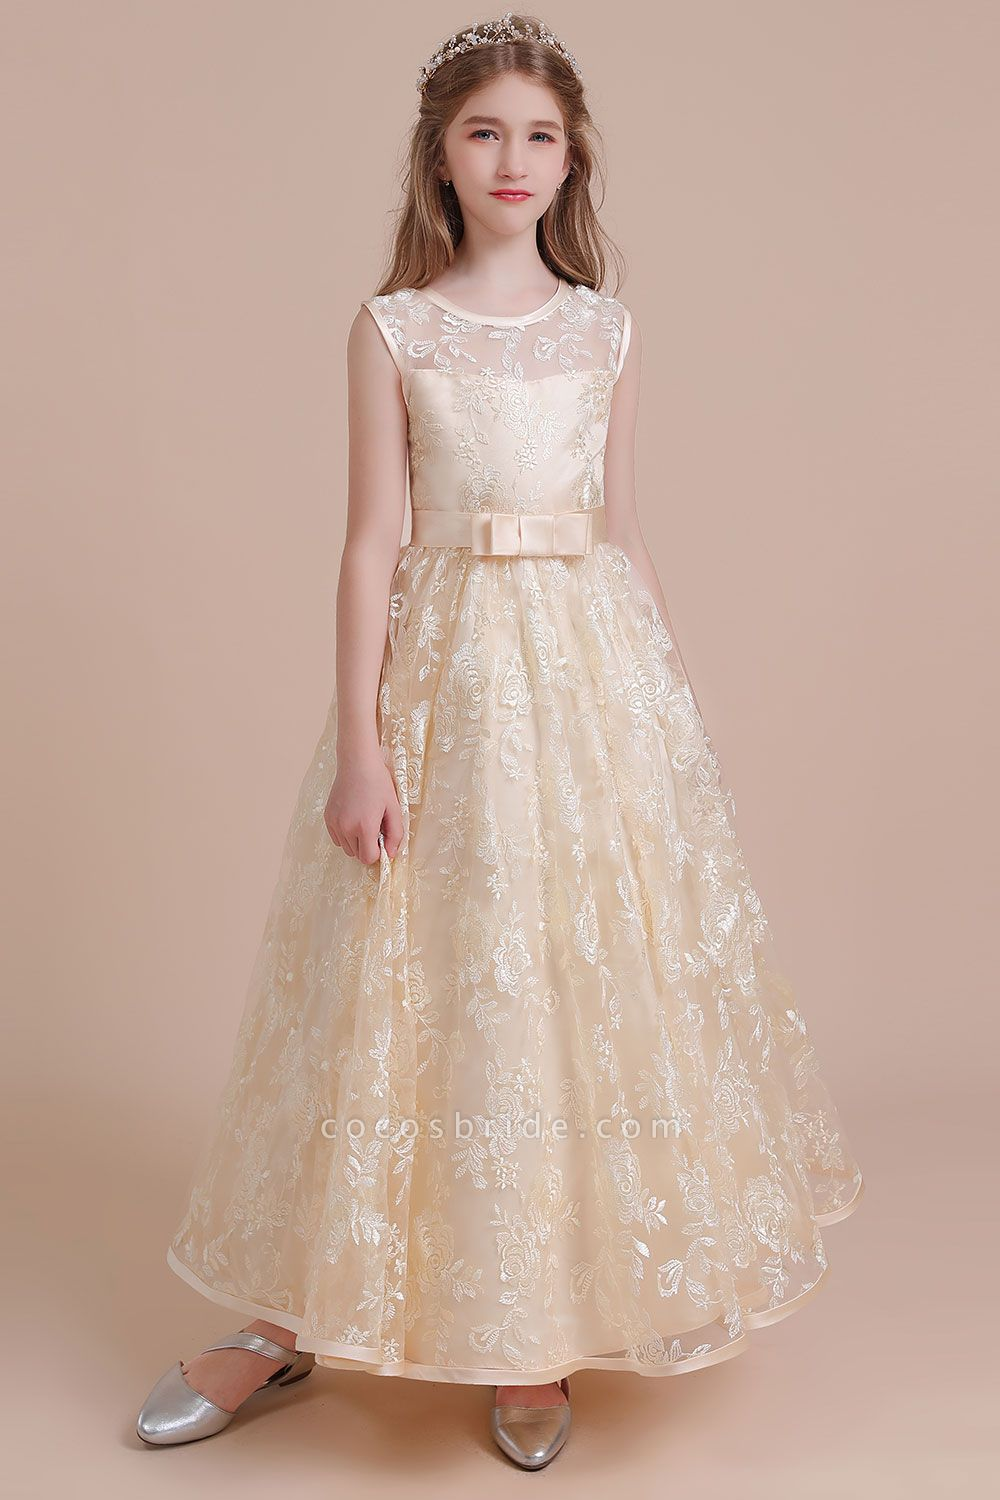 Amazing Lace Tulle A-line Flower Girl Dress